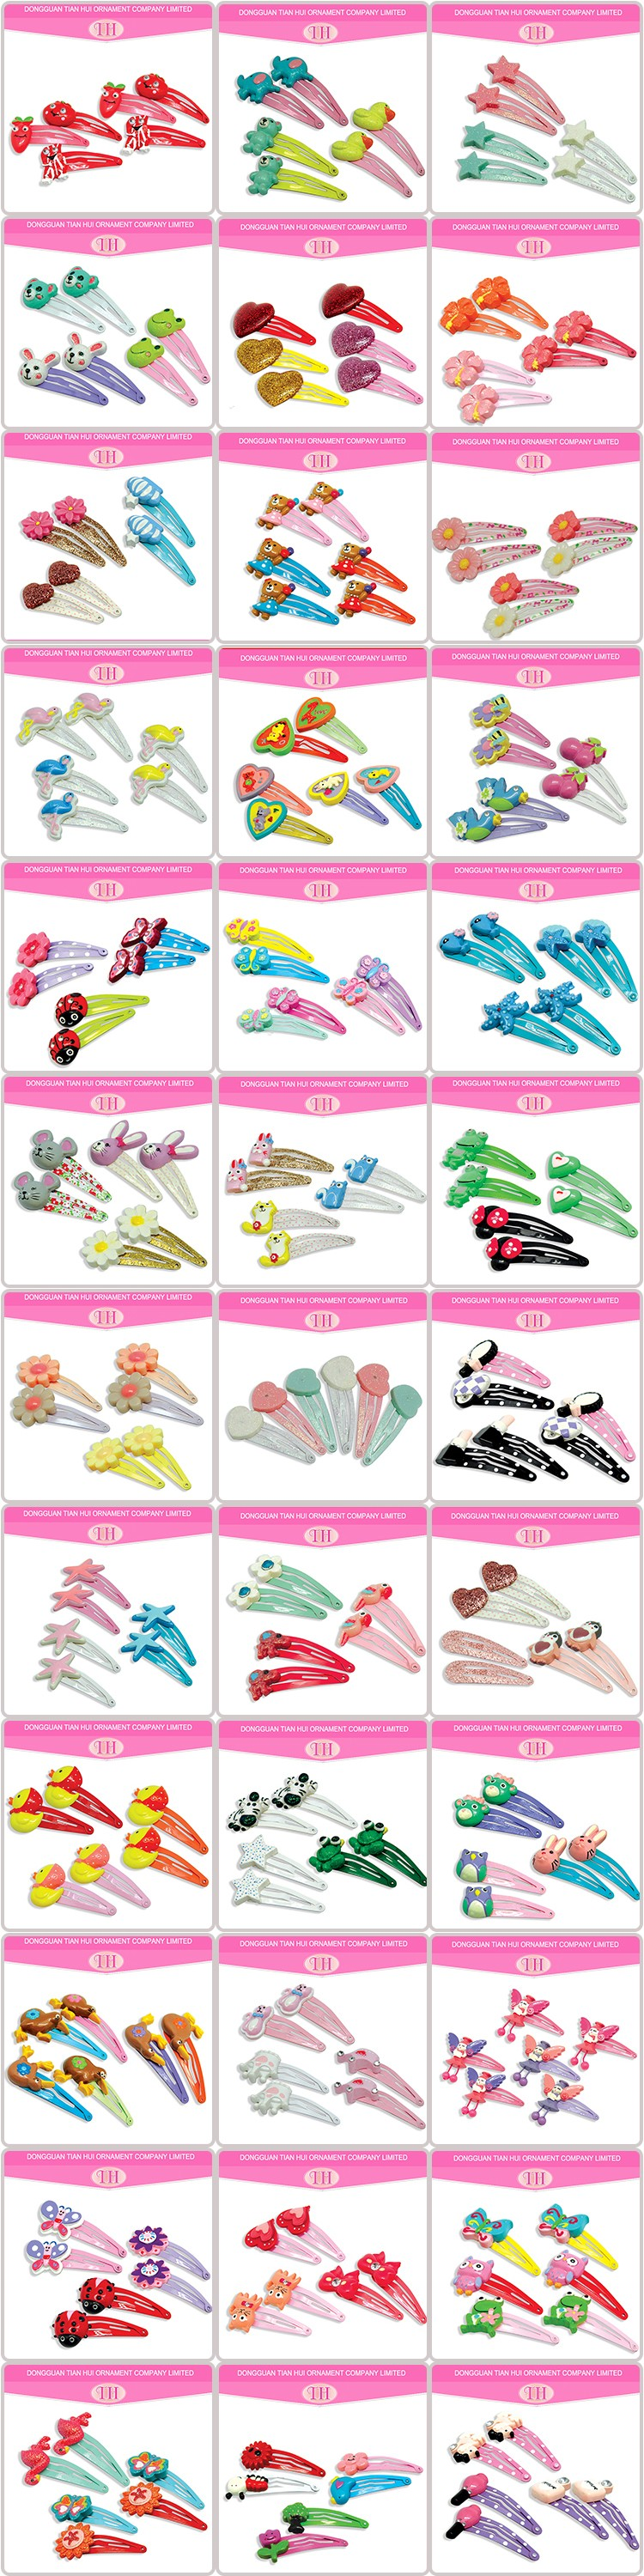 Hair accessories manufacturers - Wholesale Best Price Resin Material Custom Made Names Hair Accessories Manufacturers China